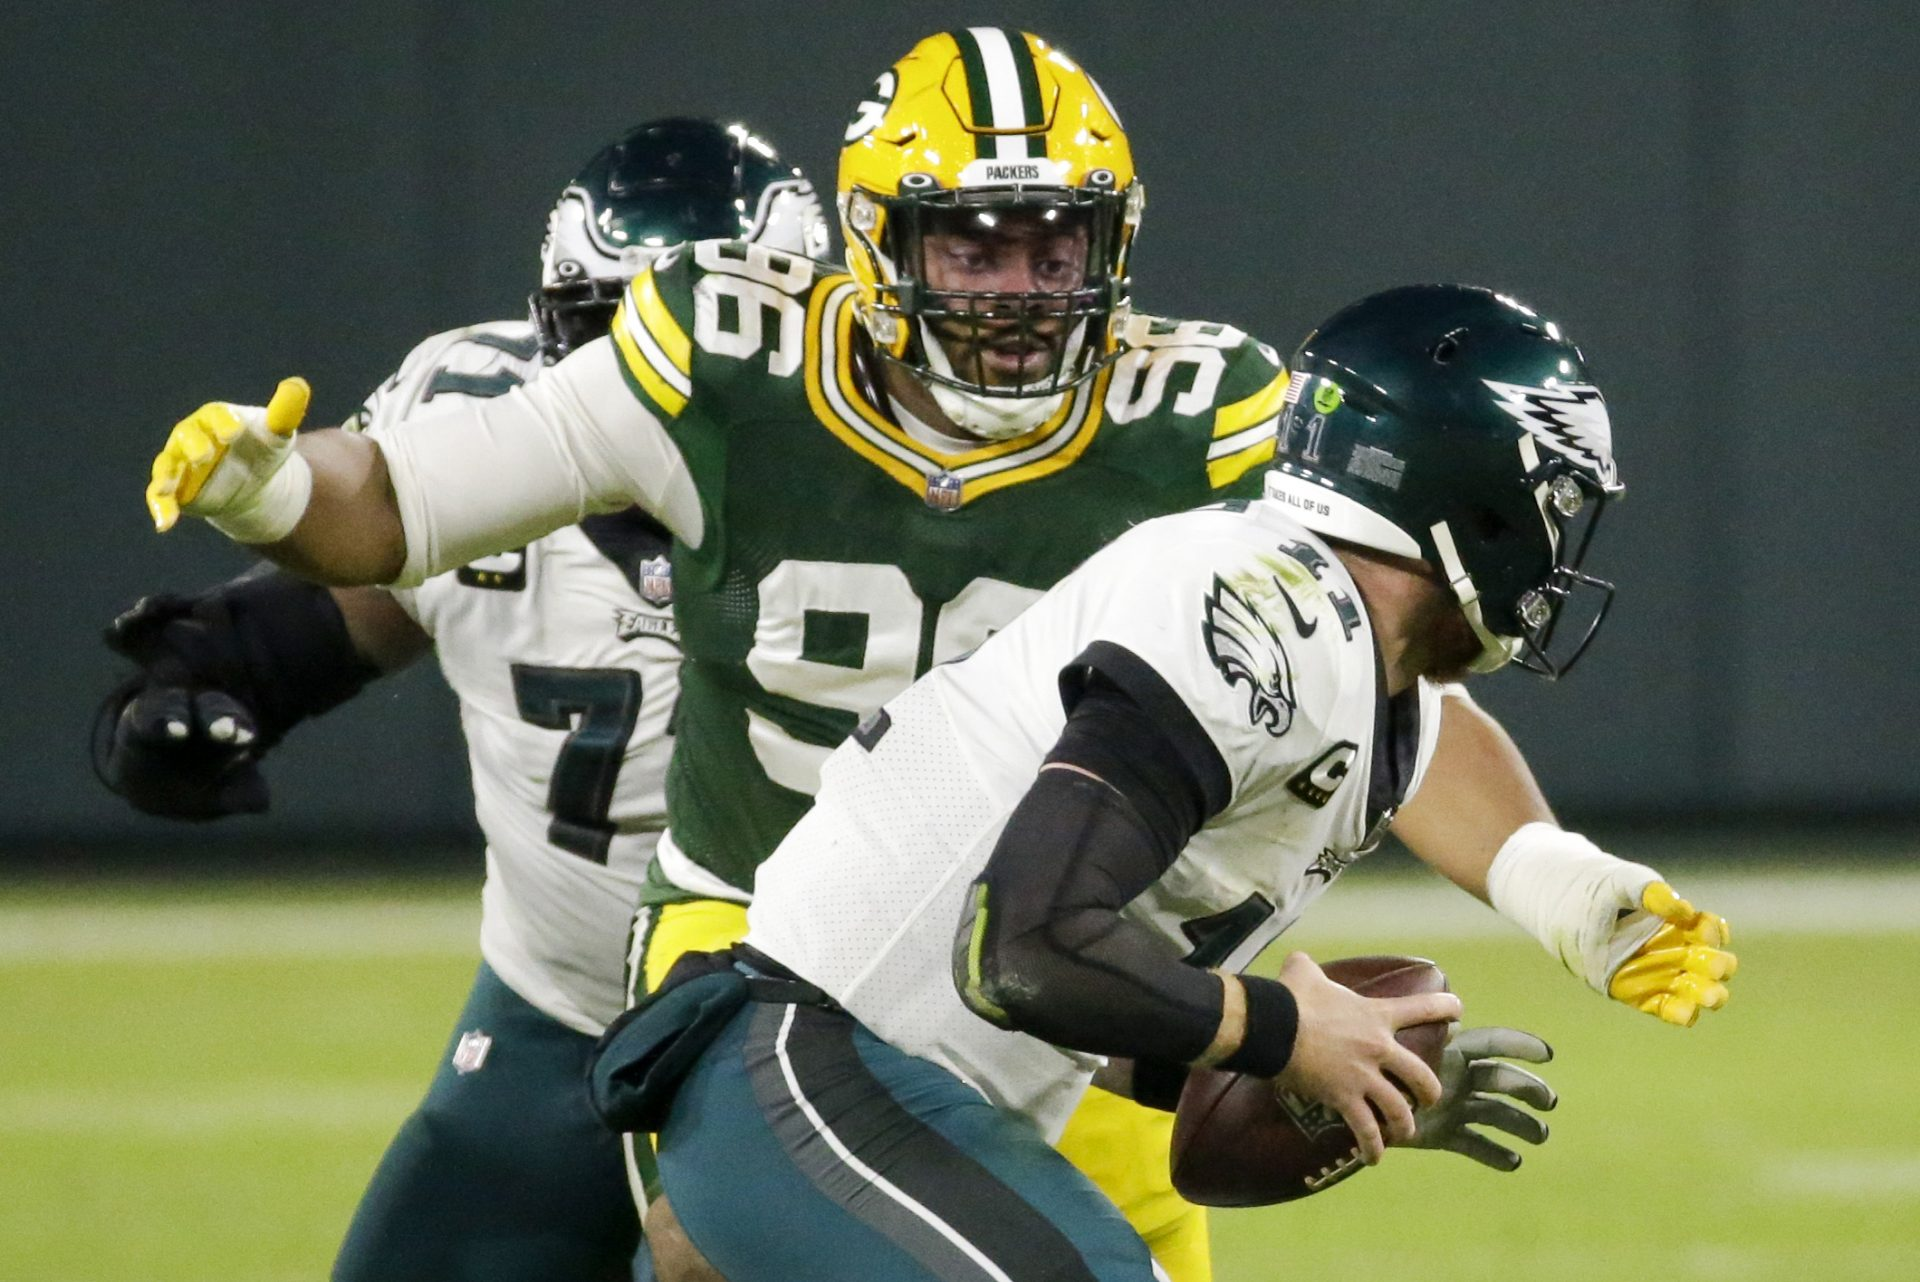 Green Bay Packers' Kingsley Keke sacks Philadelphia Eagles' Carson Wentz during the first half of an NFL football game Sunday, Dec. 6, 2020, in Green Bay, Wis.